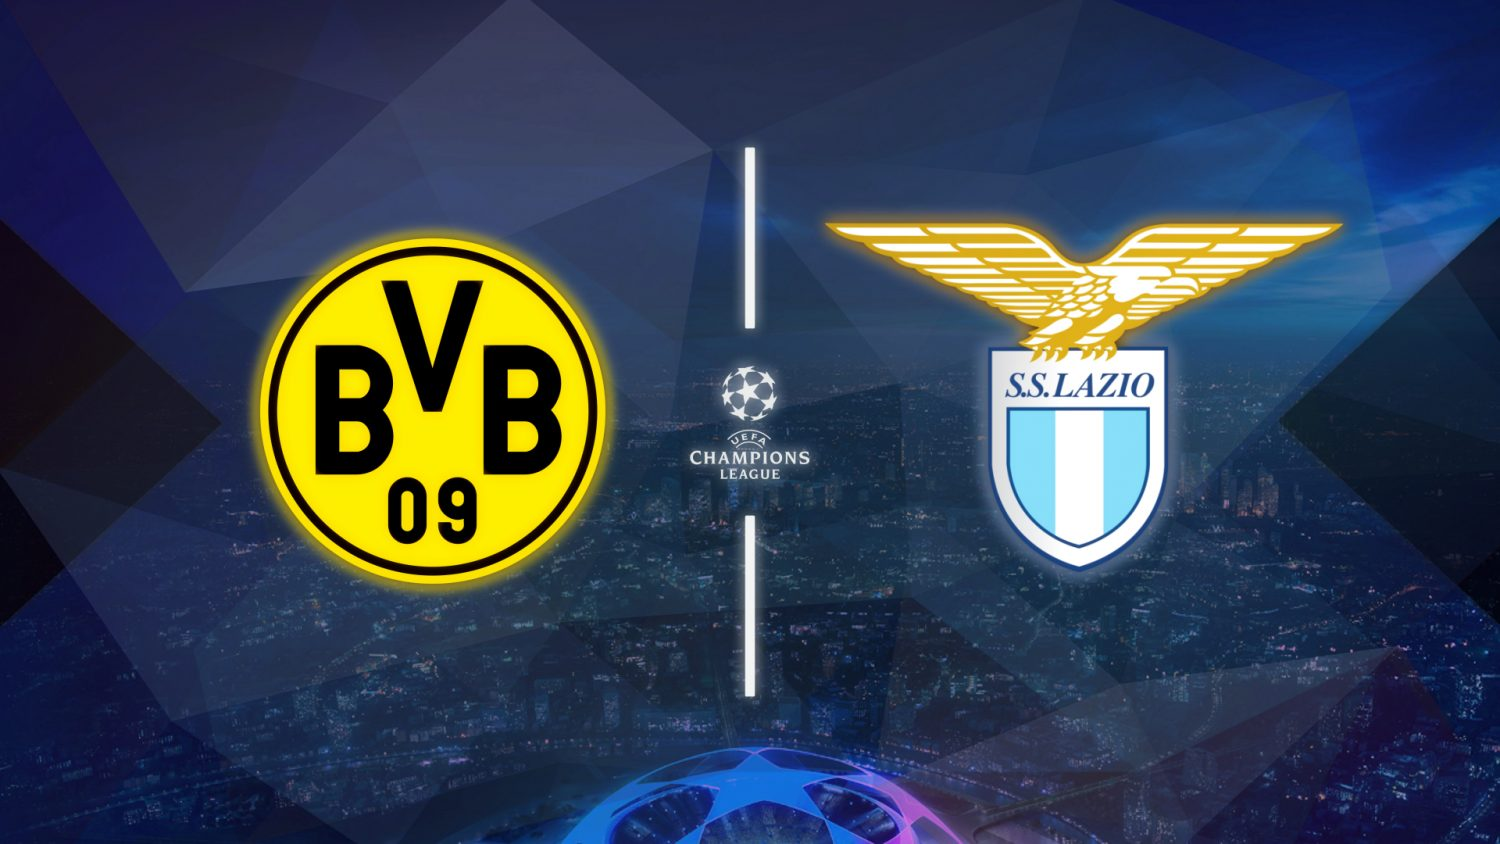 Borussia Dortmund Vs Lazio Match Preview Lineups Prediction The Laziali